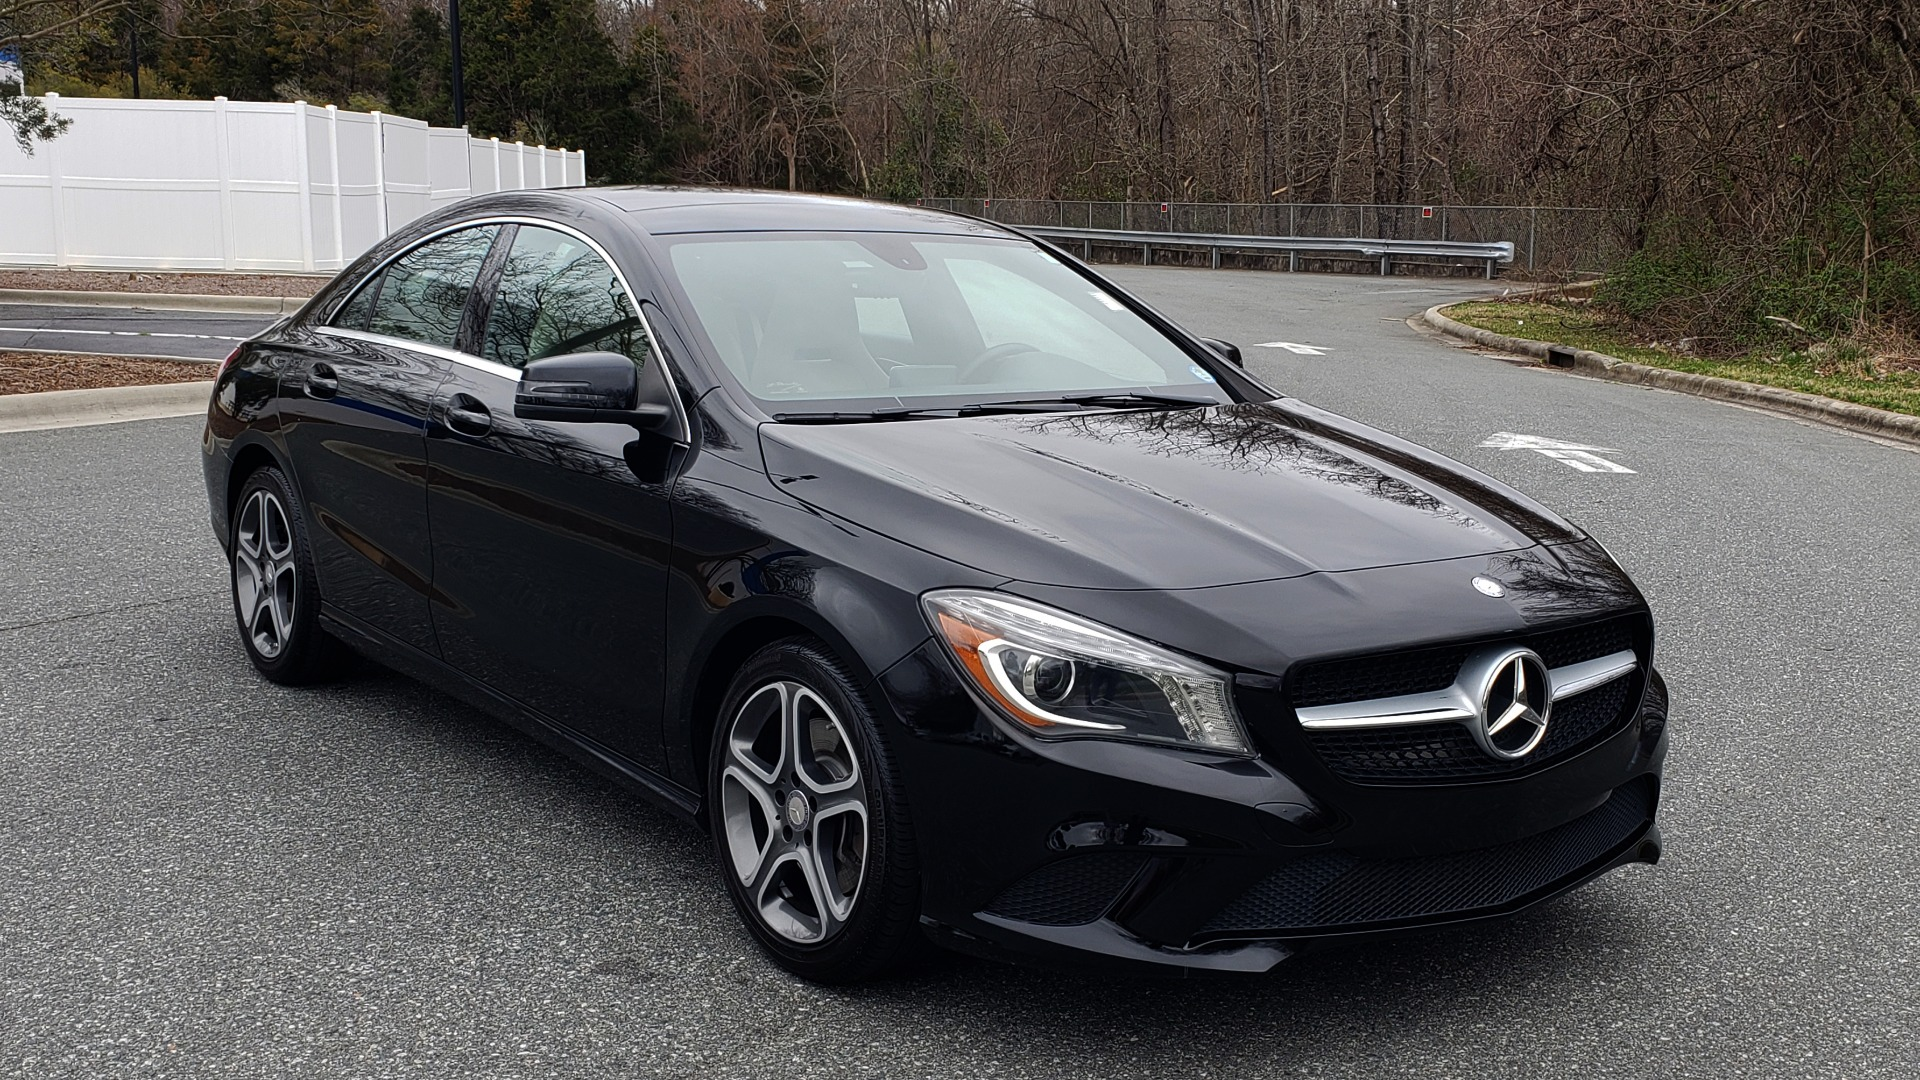 Used 2014 Mercedes-Benz CLA-Class CLA 250 PREM / MULTIMEDIA / NAV / PANO-ROOF / REARVIEW for sale Sold at Formula Imports in Charlotte NC 28227 4